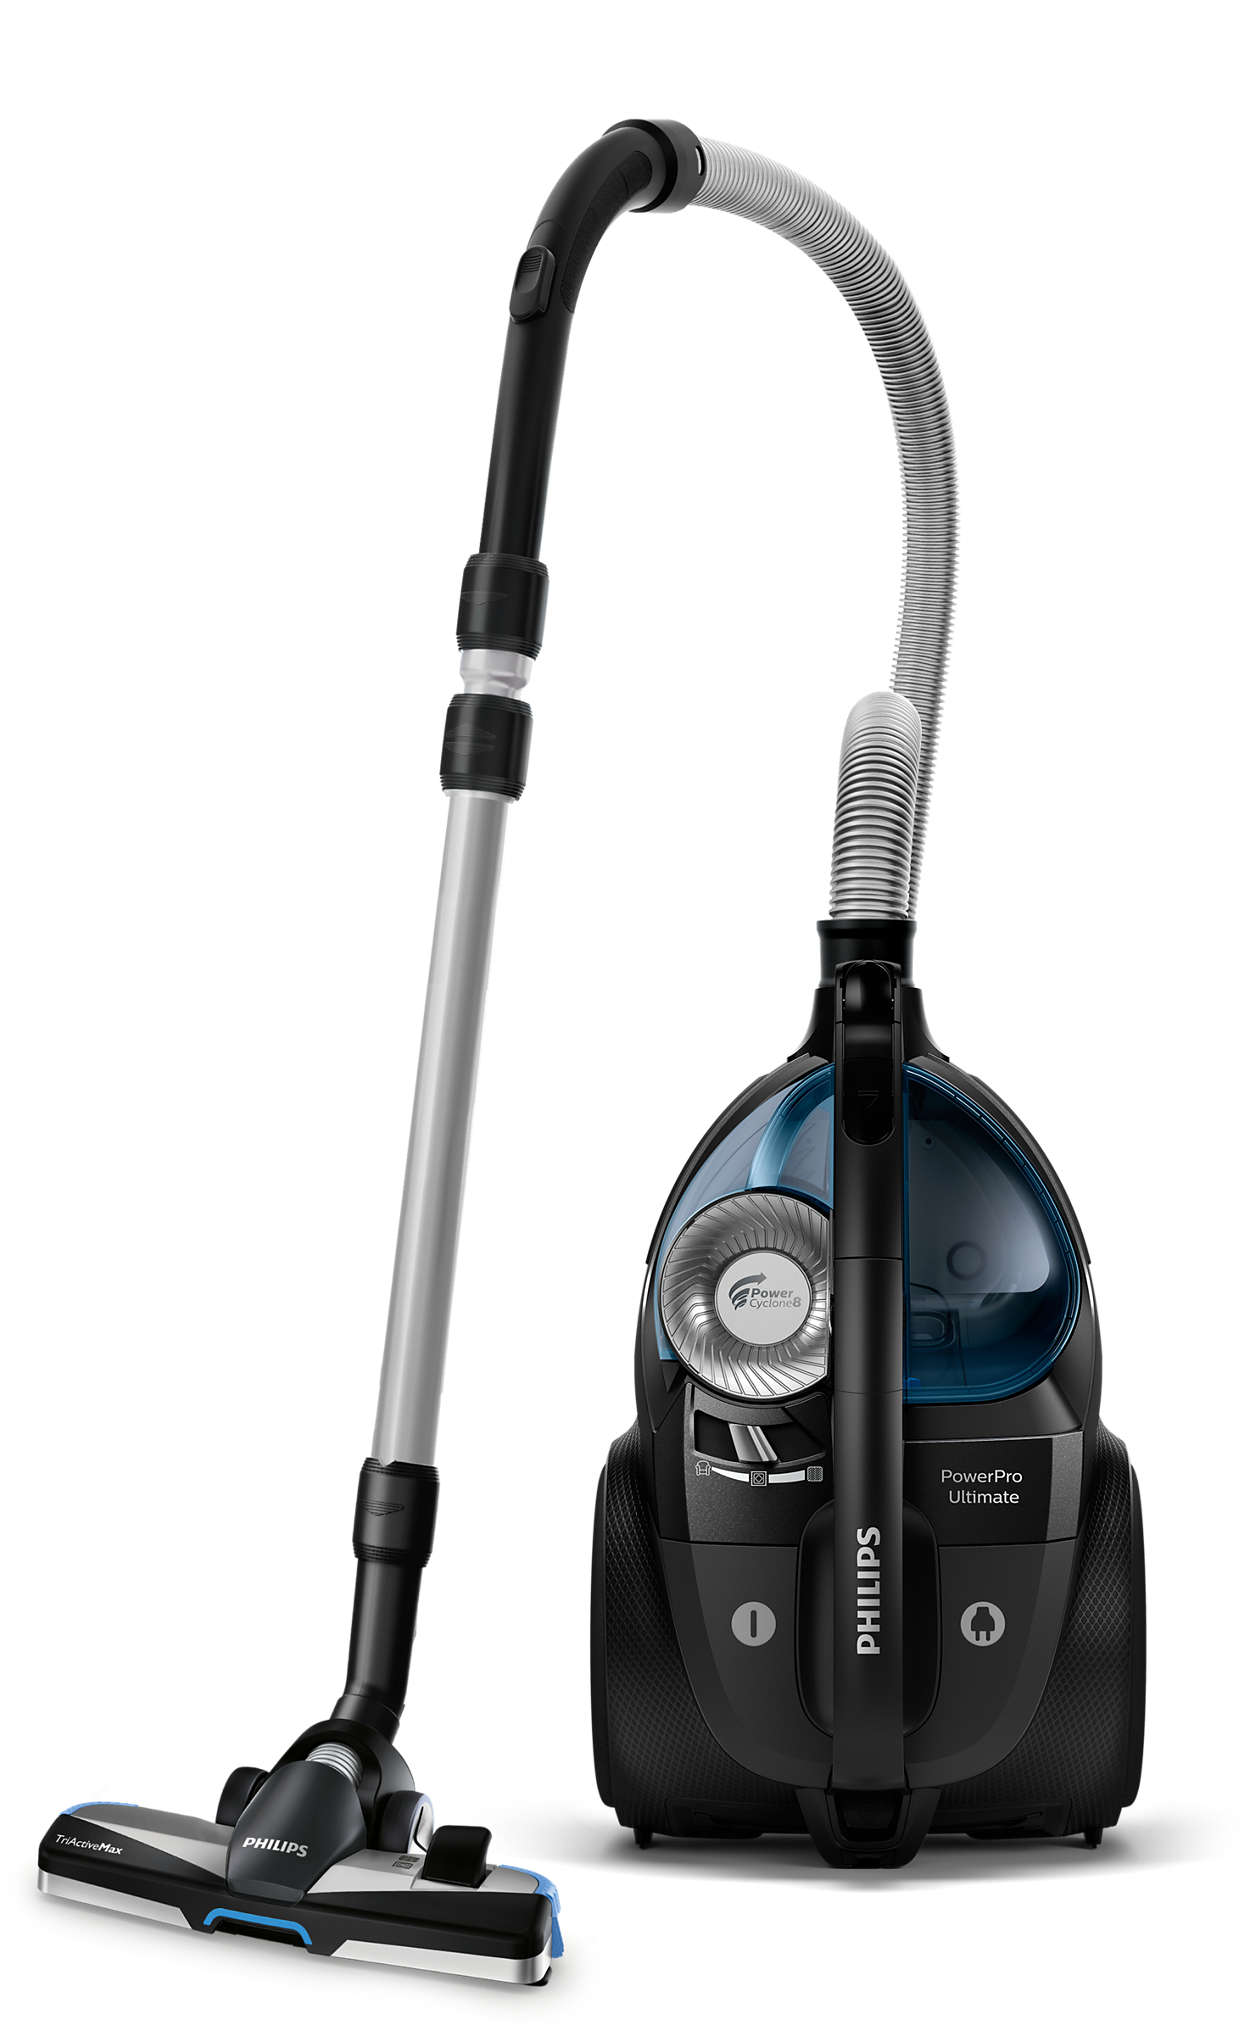 Philips FC9922|09 PowerPro Ultimate Preisvergleich | CHECK24